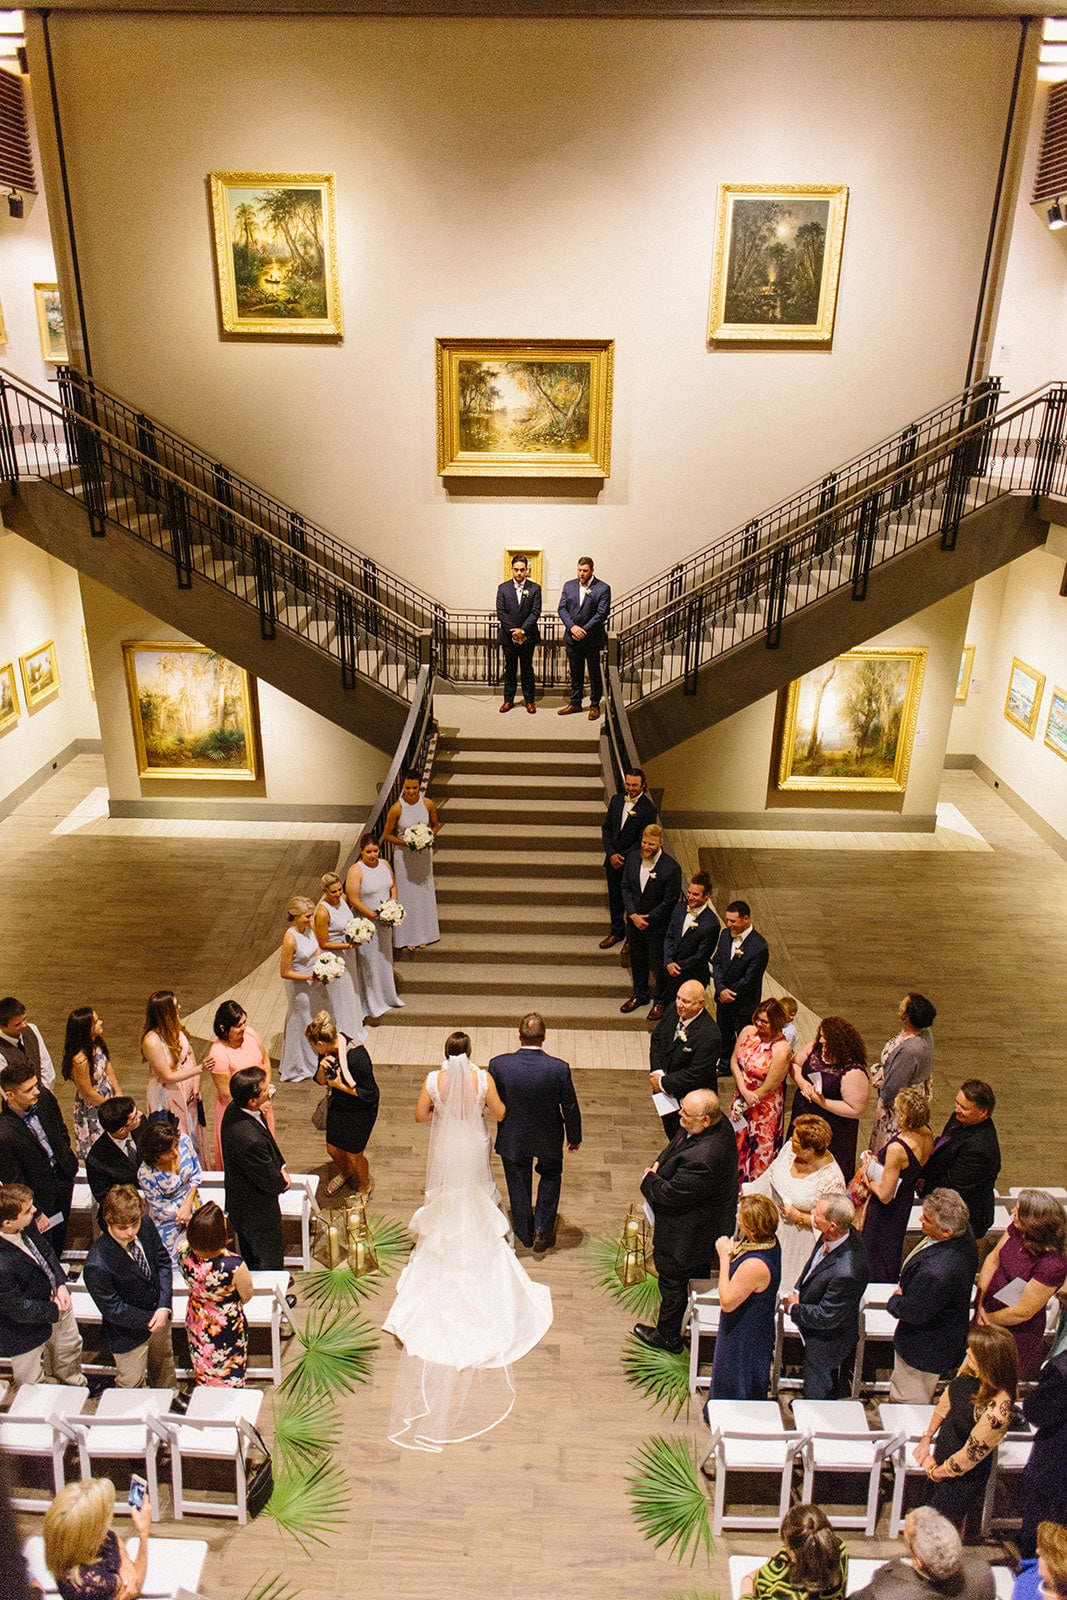 Museum of Arts and Sciences - wedding on a dazzling staircase